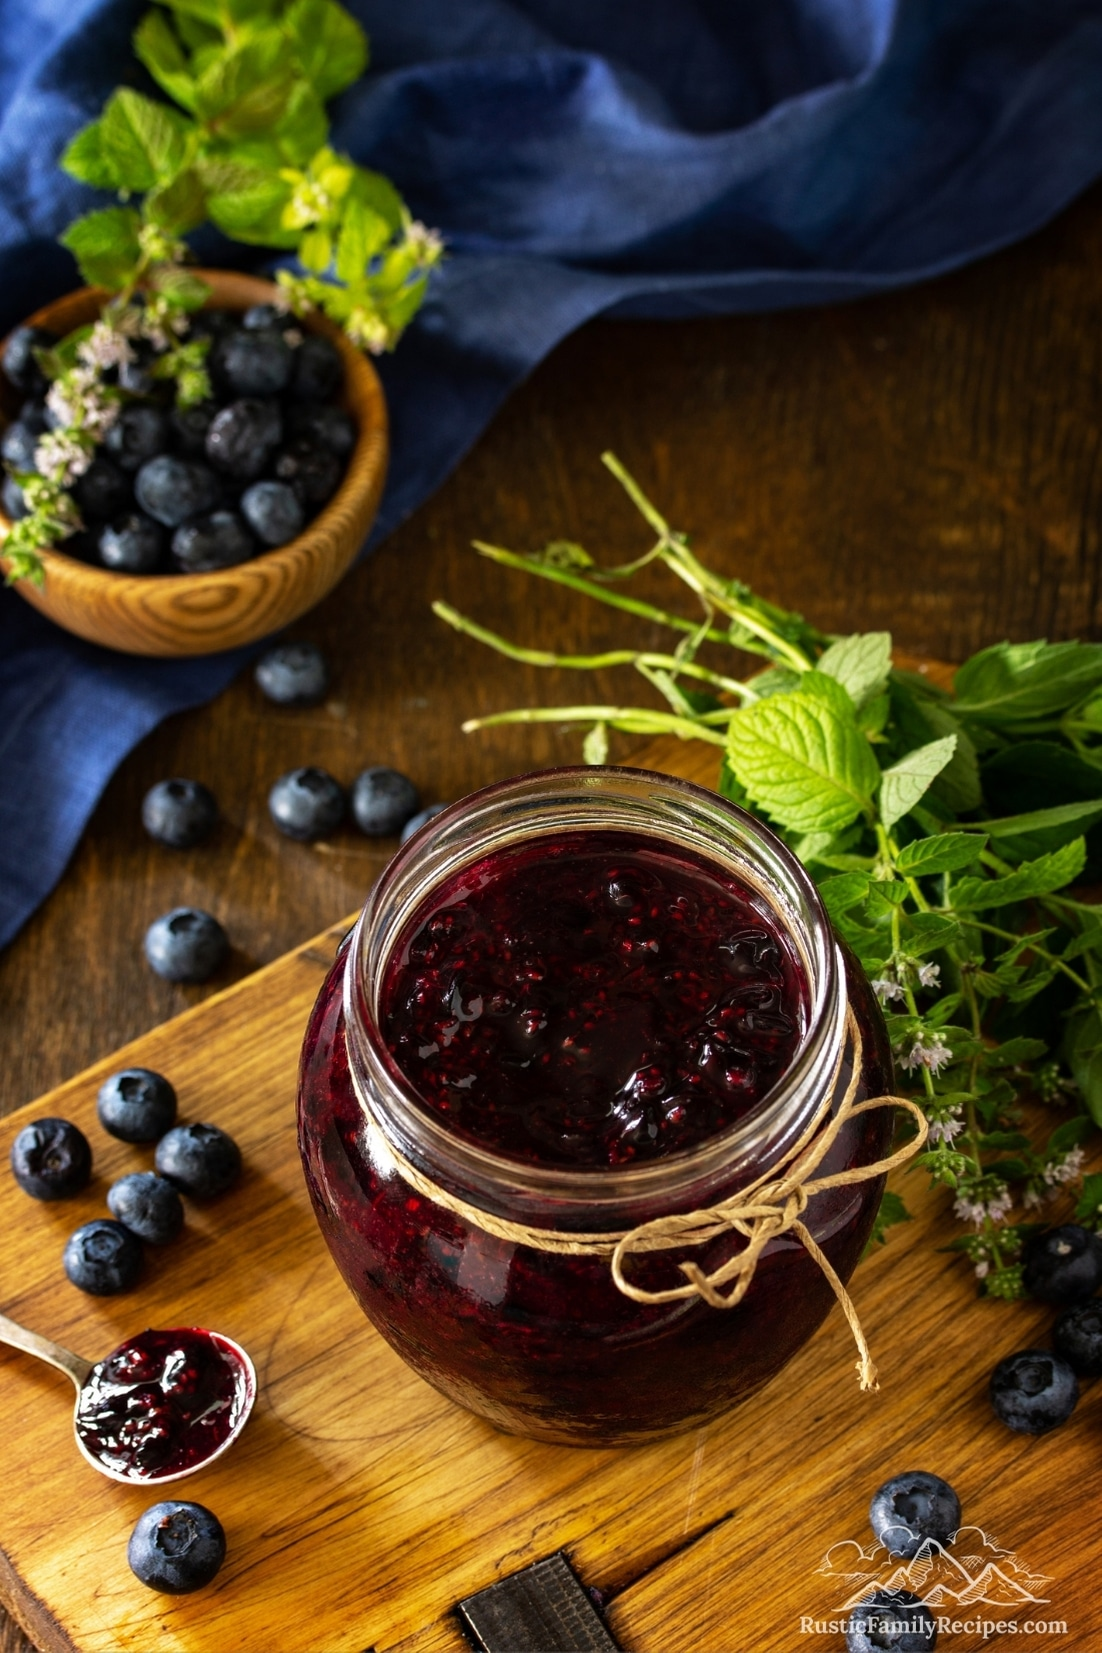 A jar on a wooden table with homemade blueberry sauce